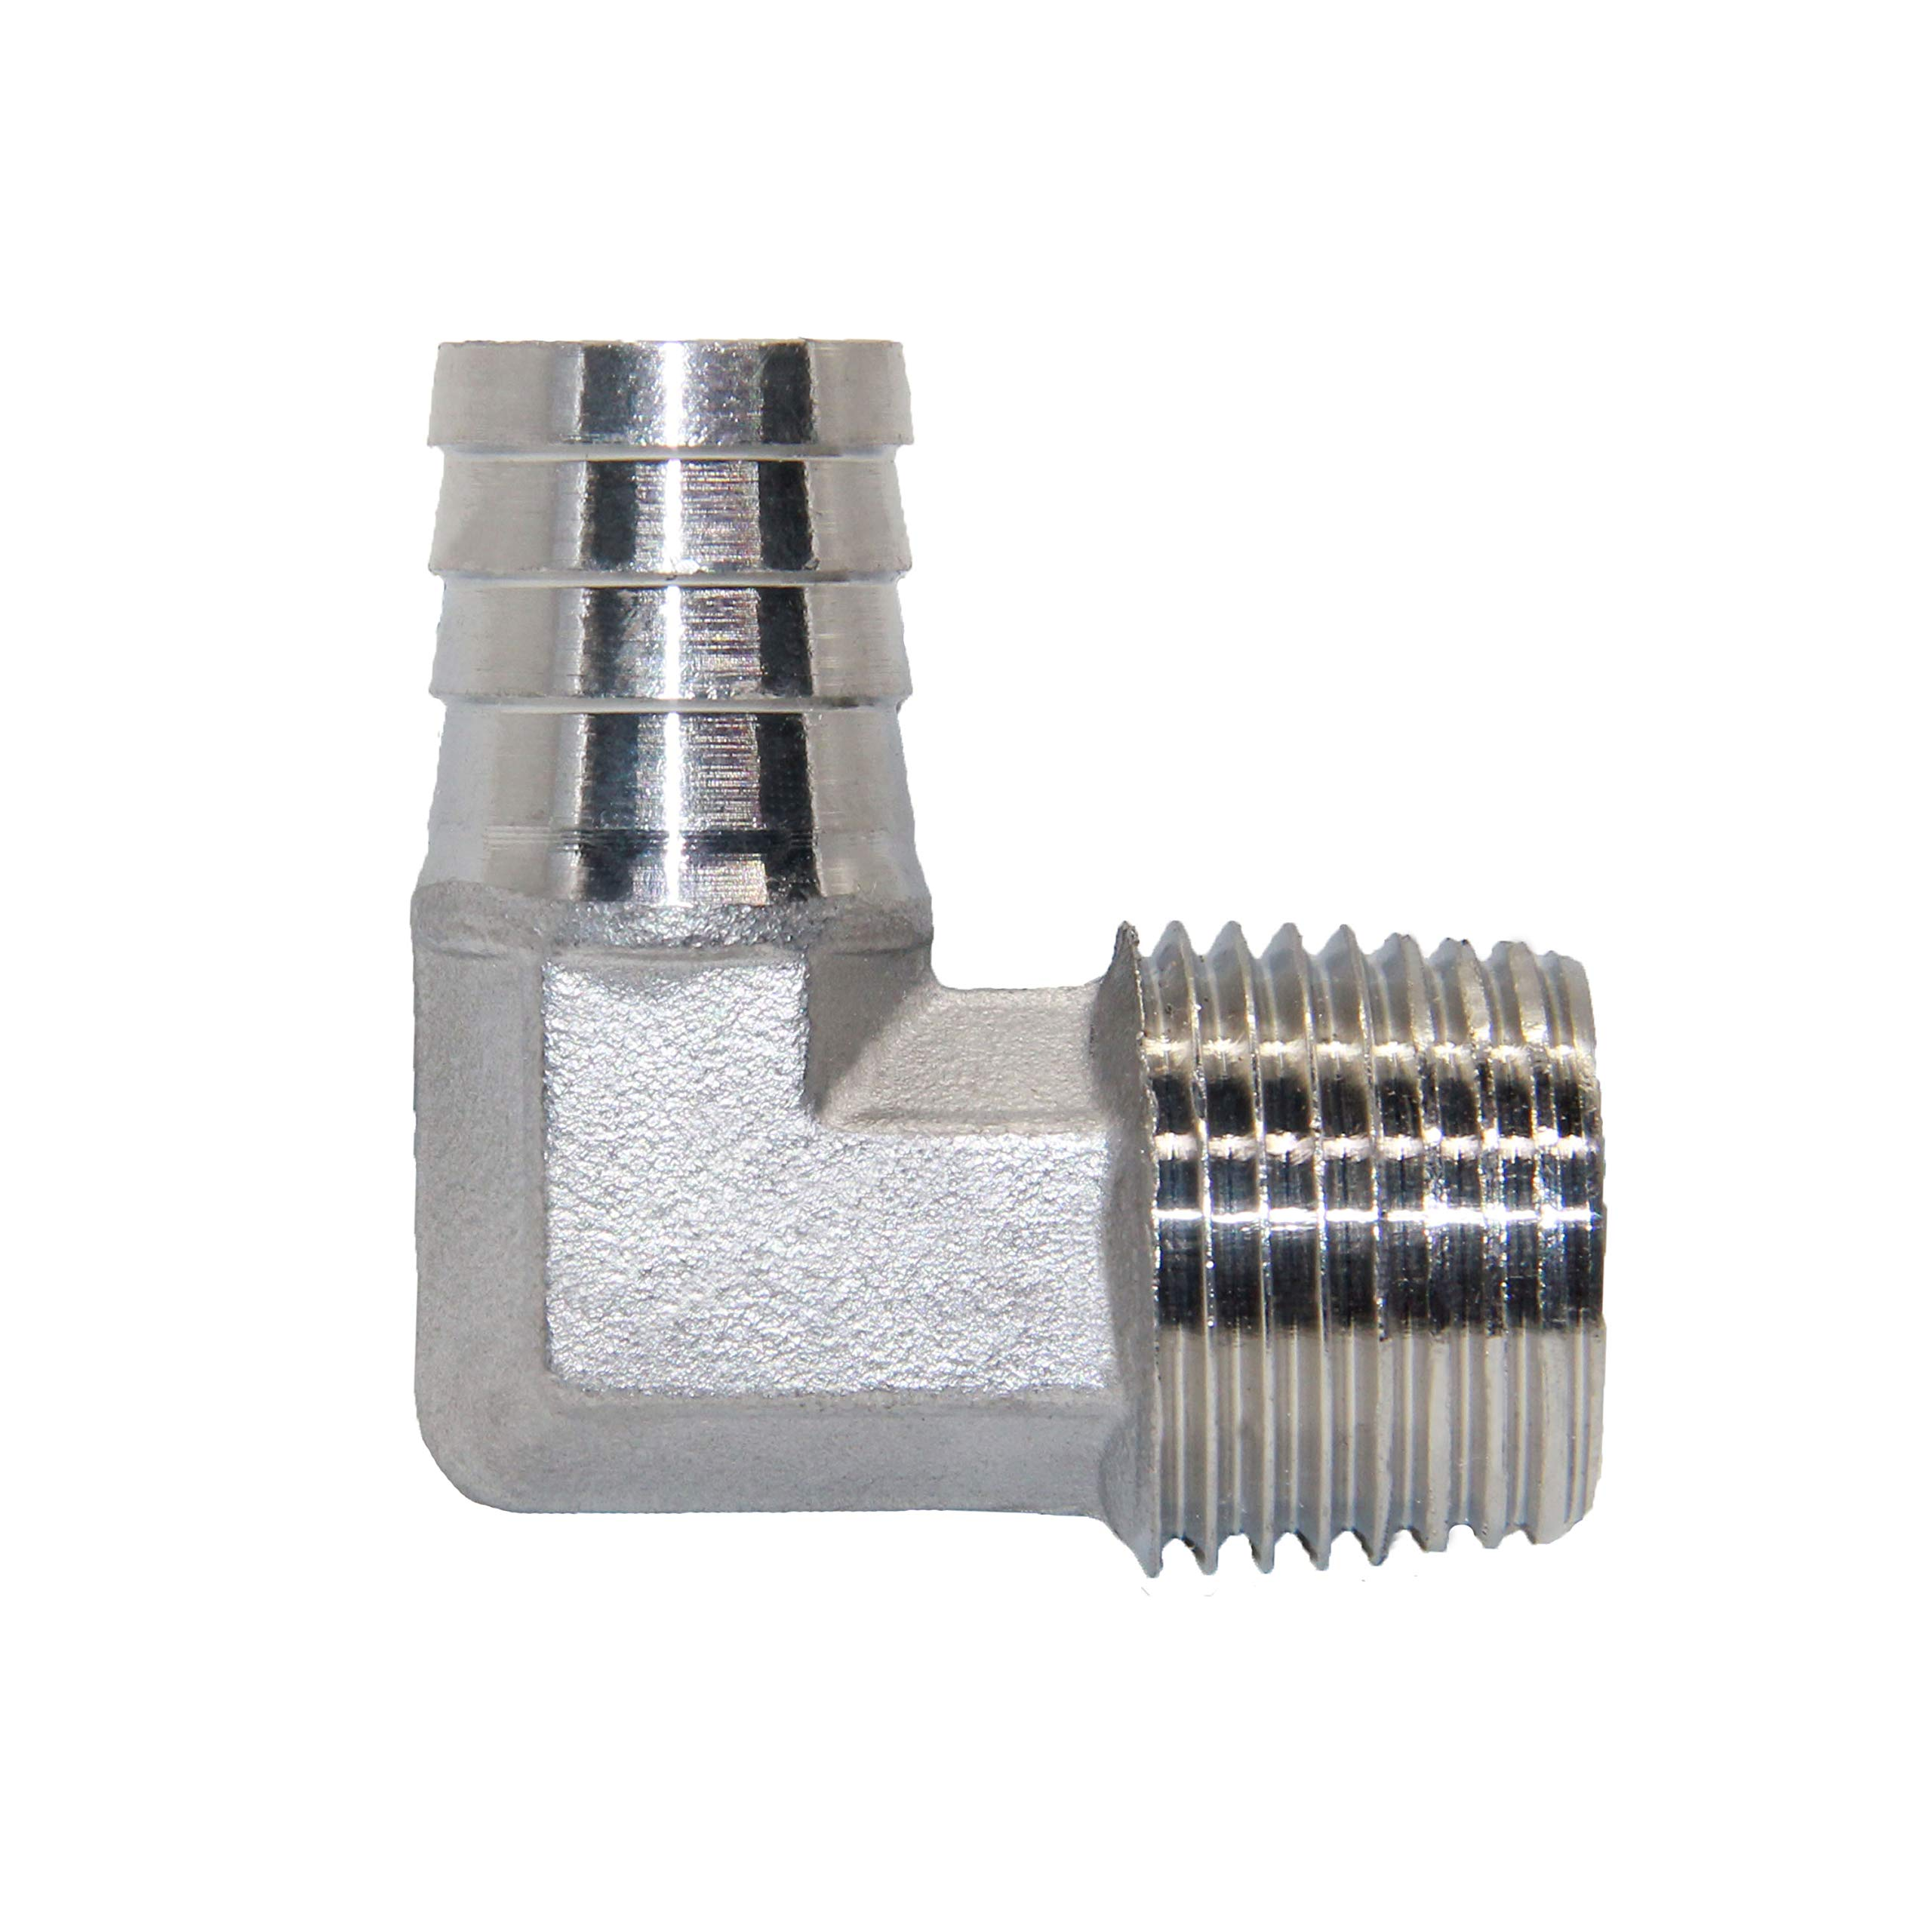 Joywayus Stainless Steel Hose Fitting 90 Degree Elbow 3/4'' Barb x 3/4''NPT Male Pipe Water/Fuel/Air